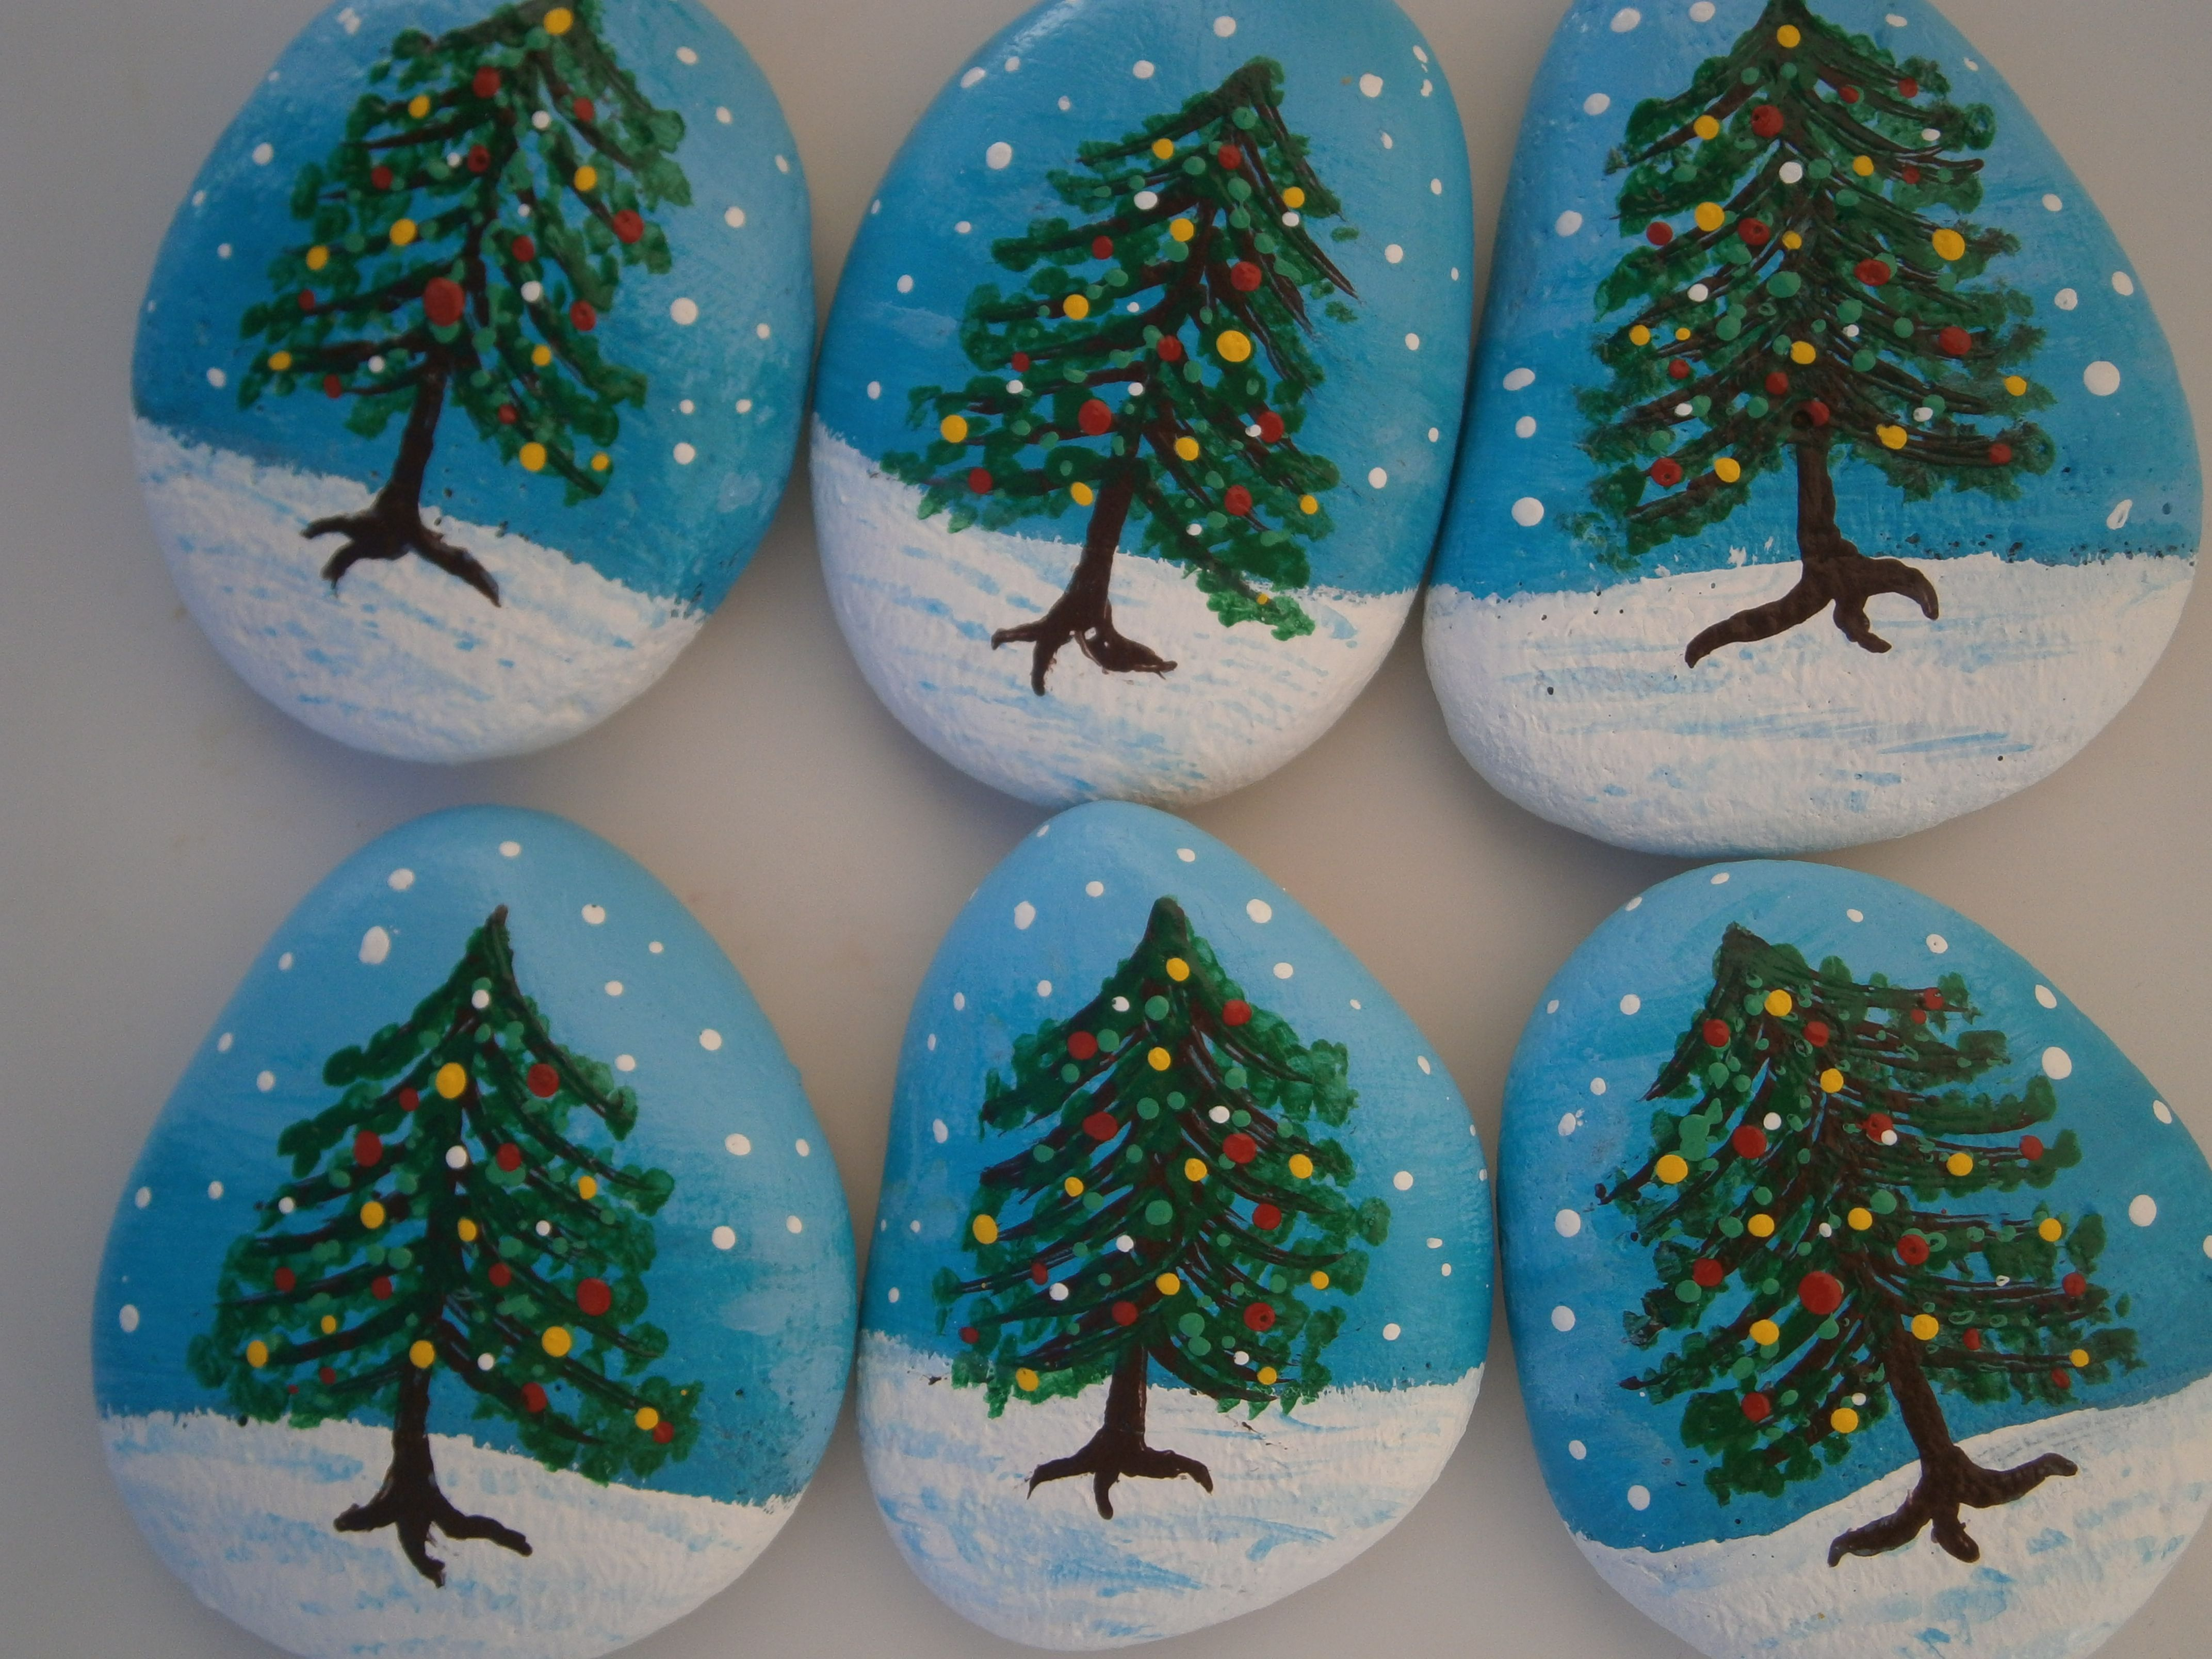 Christmas Trees Painted Rocks At Www Placeforyou Etsy Com Christmas Rock Christmas Paintings Christmas Tree Painting